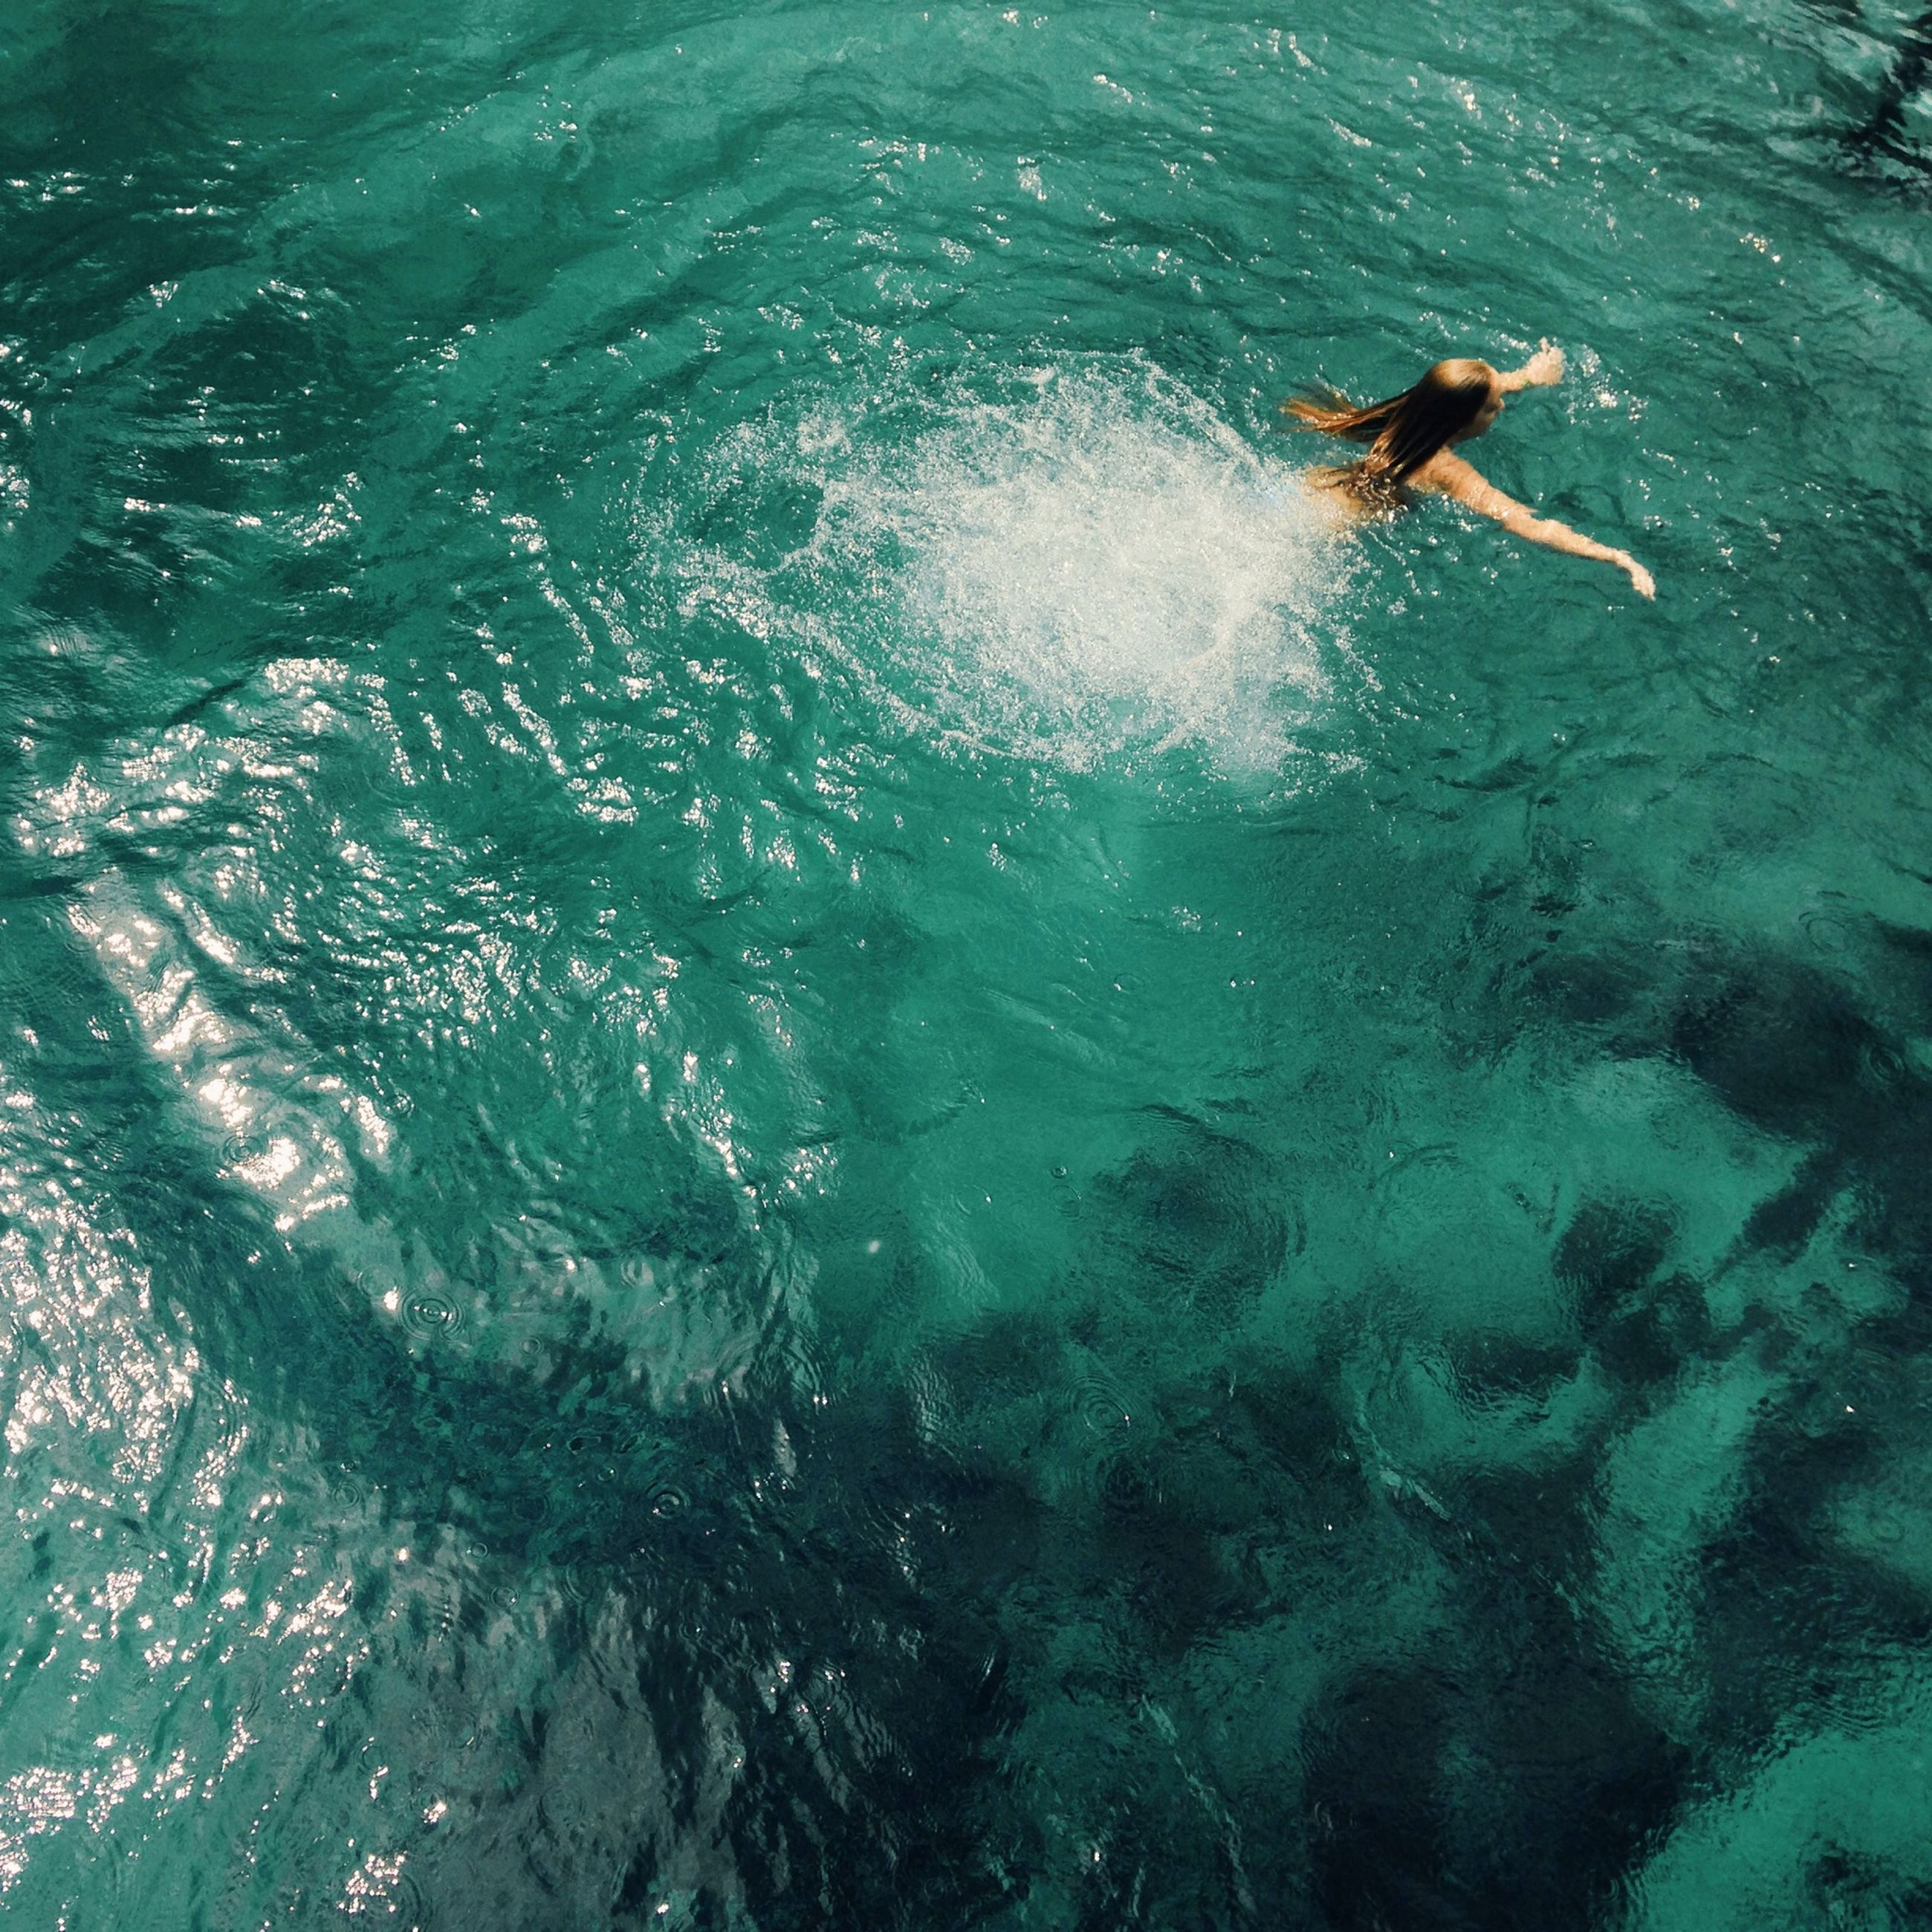 water, lifestyles, leisure activity, enjoyment, full length, sea, fun, high angle view, vacations, swimming, waterfront, men, motion, jumping, carefree, sunlight, recreational pursuit, adventure